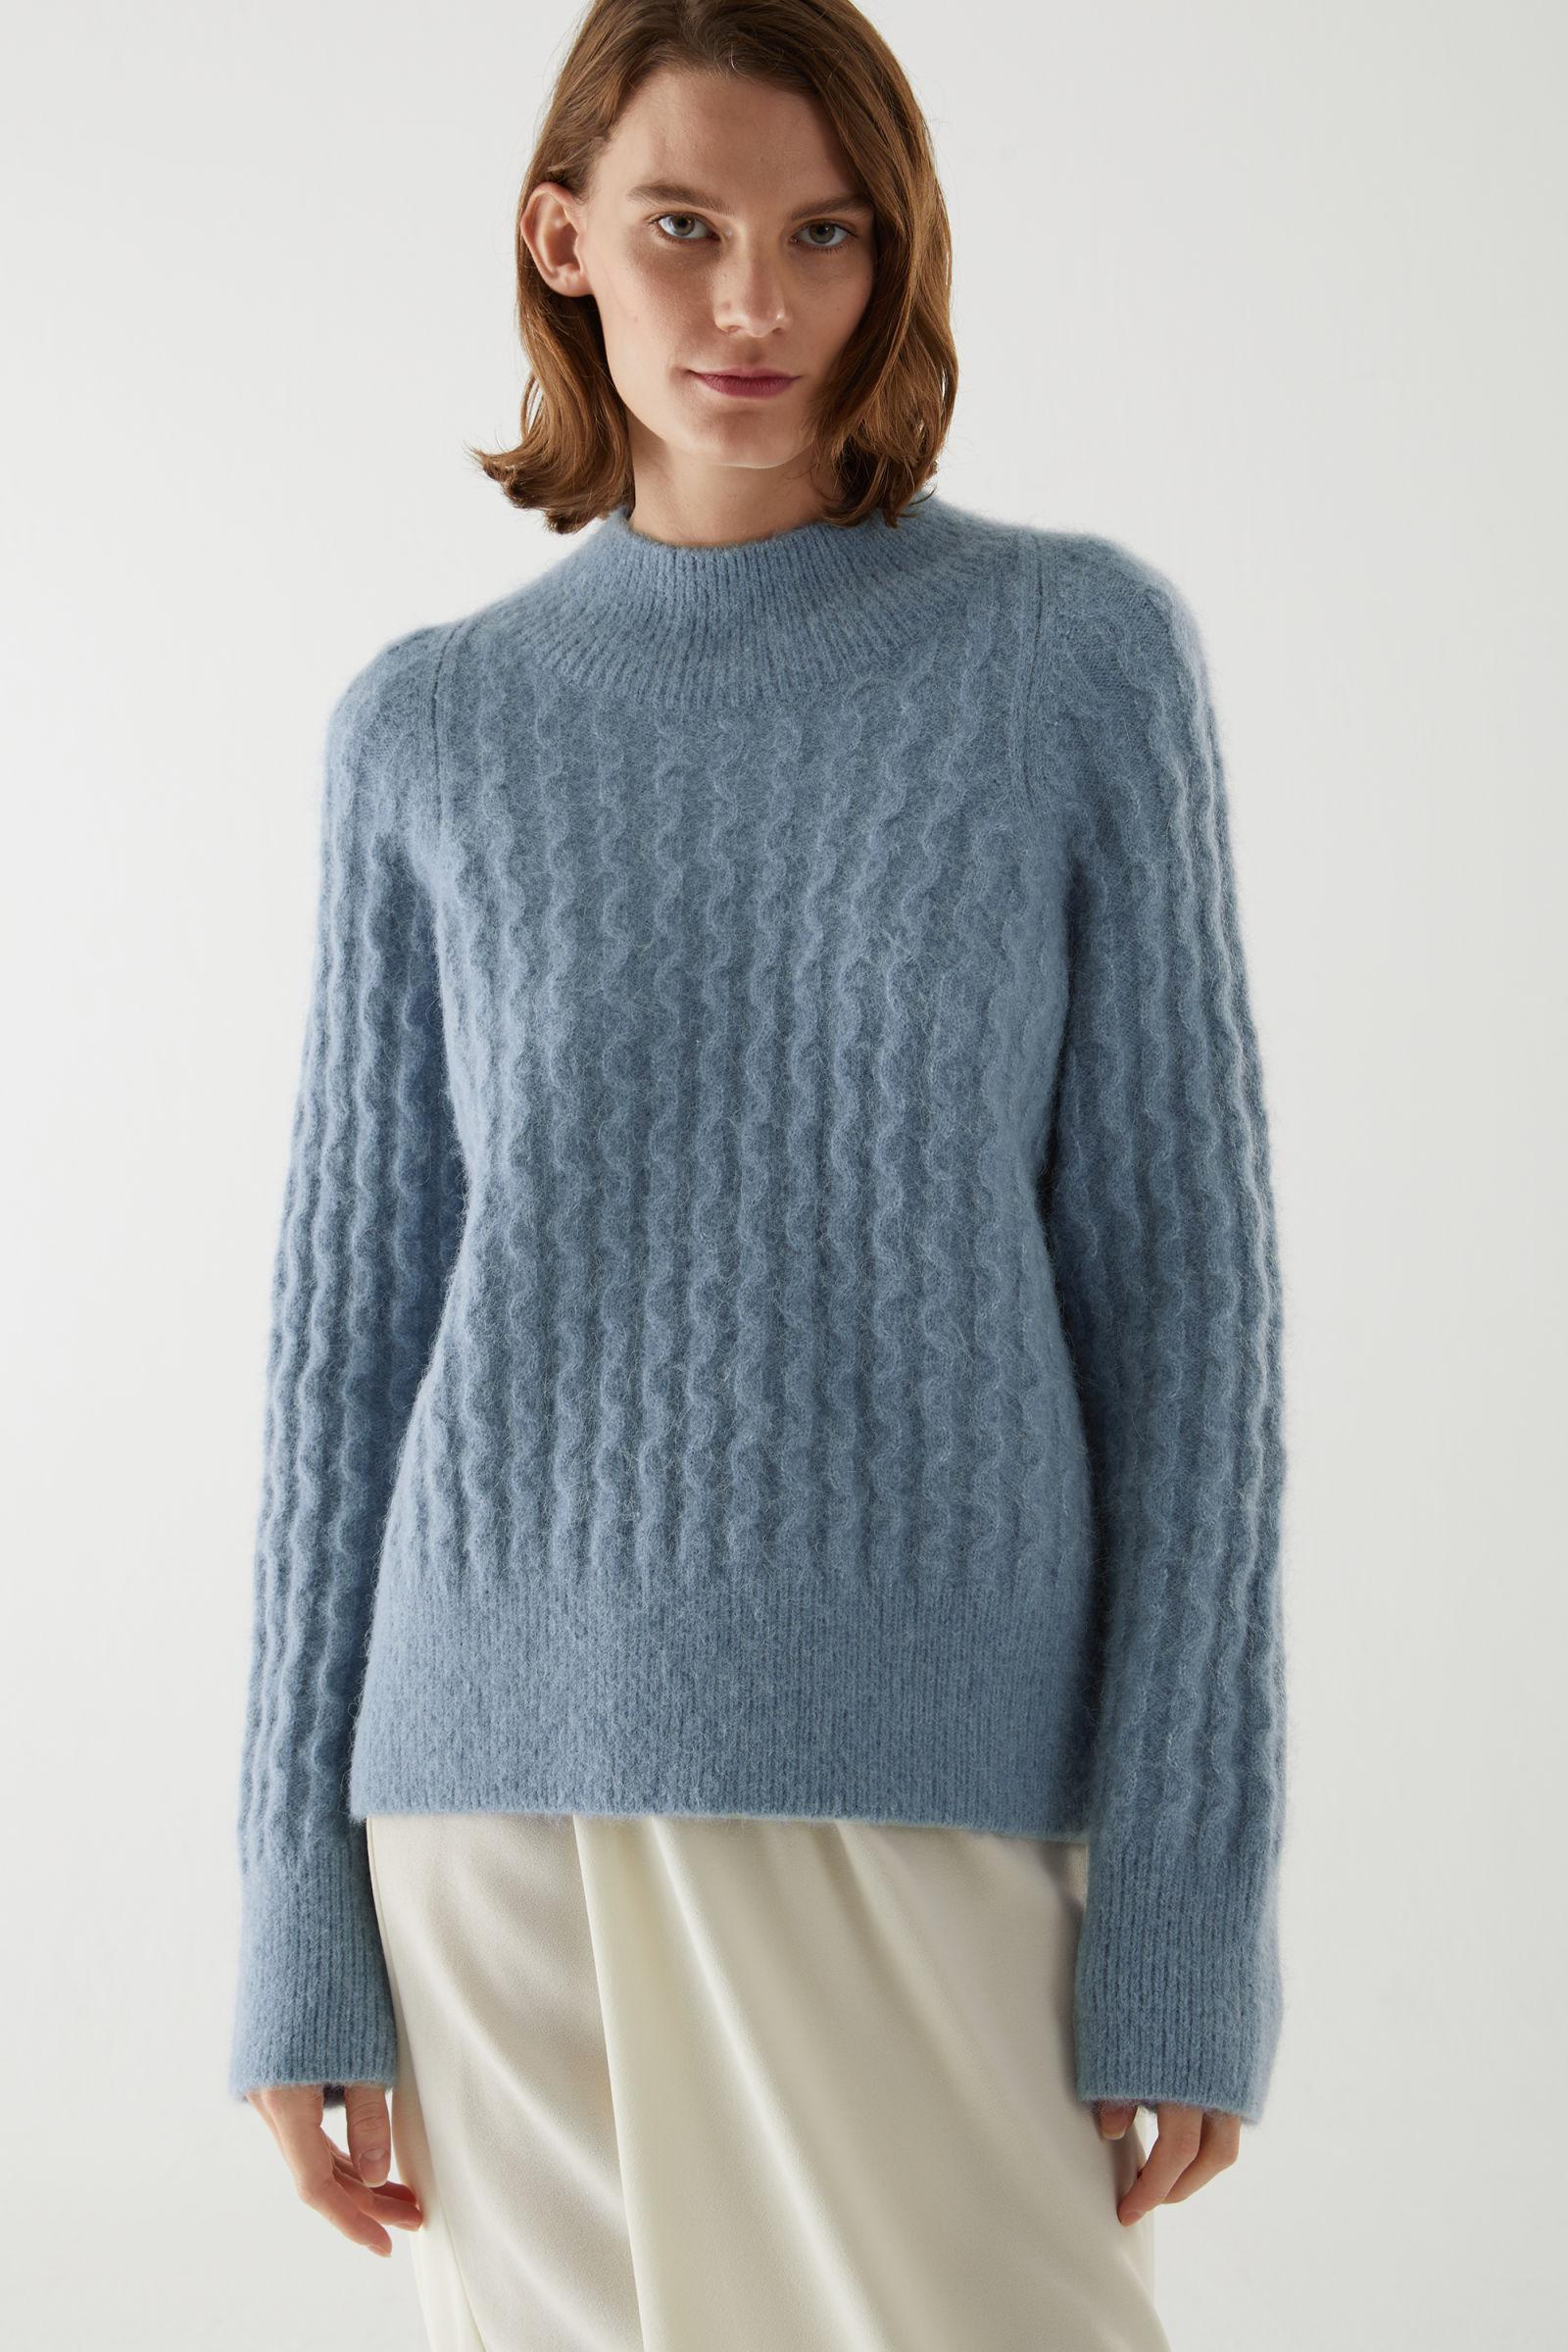 ALPACA-WOOL CABLE KNIT SWEATER